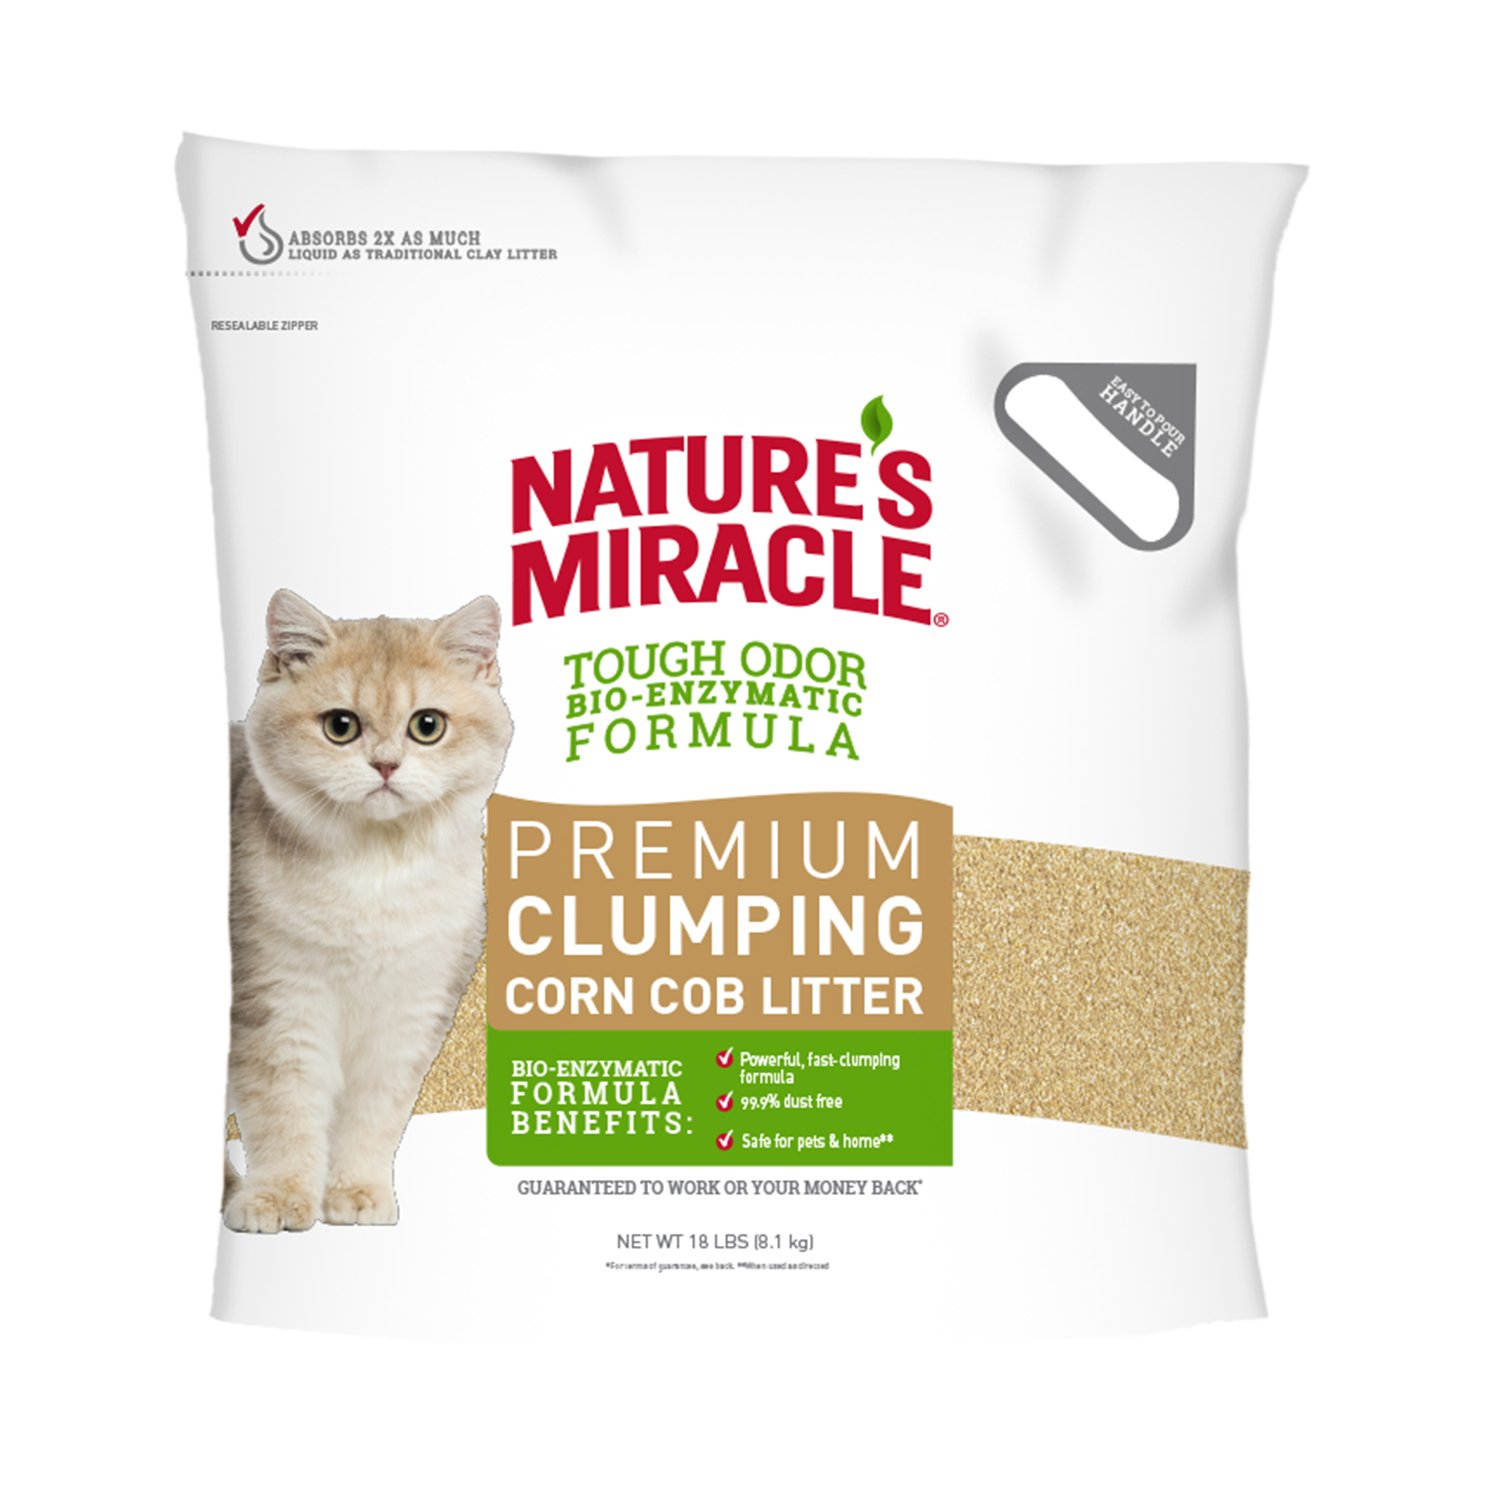 Nature's Miracle Premium Clumping Corn Cob Litter, Tough Odor Bio-Enzymatic Formula, Dust Free